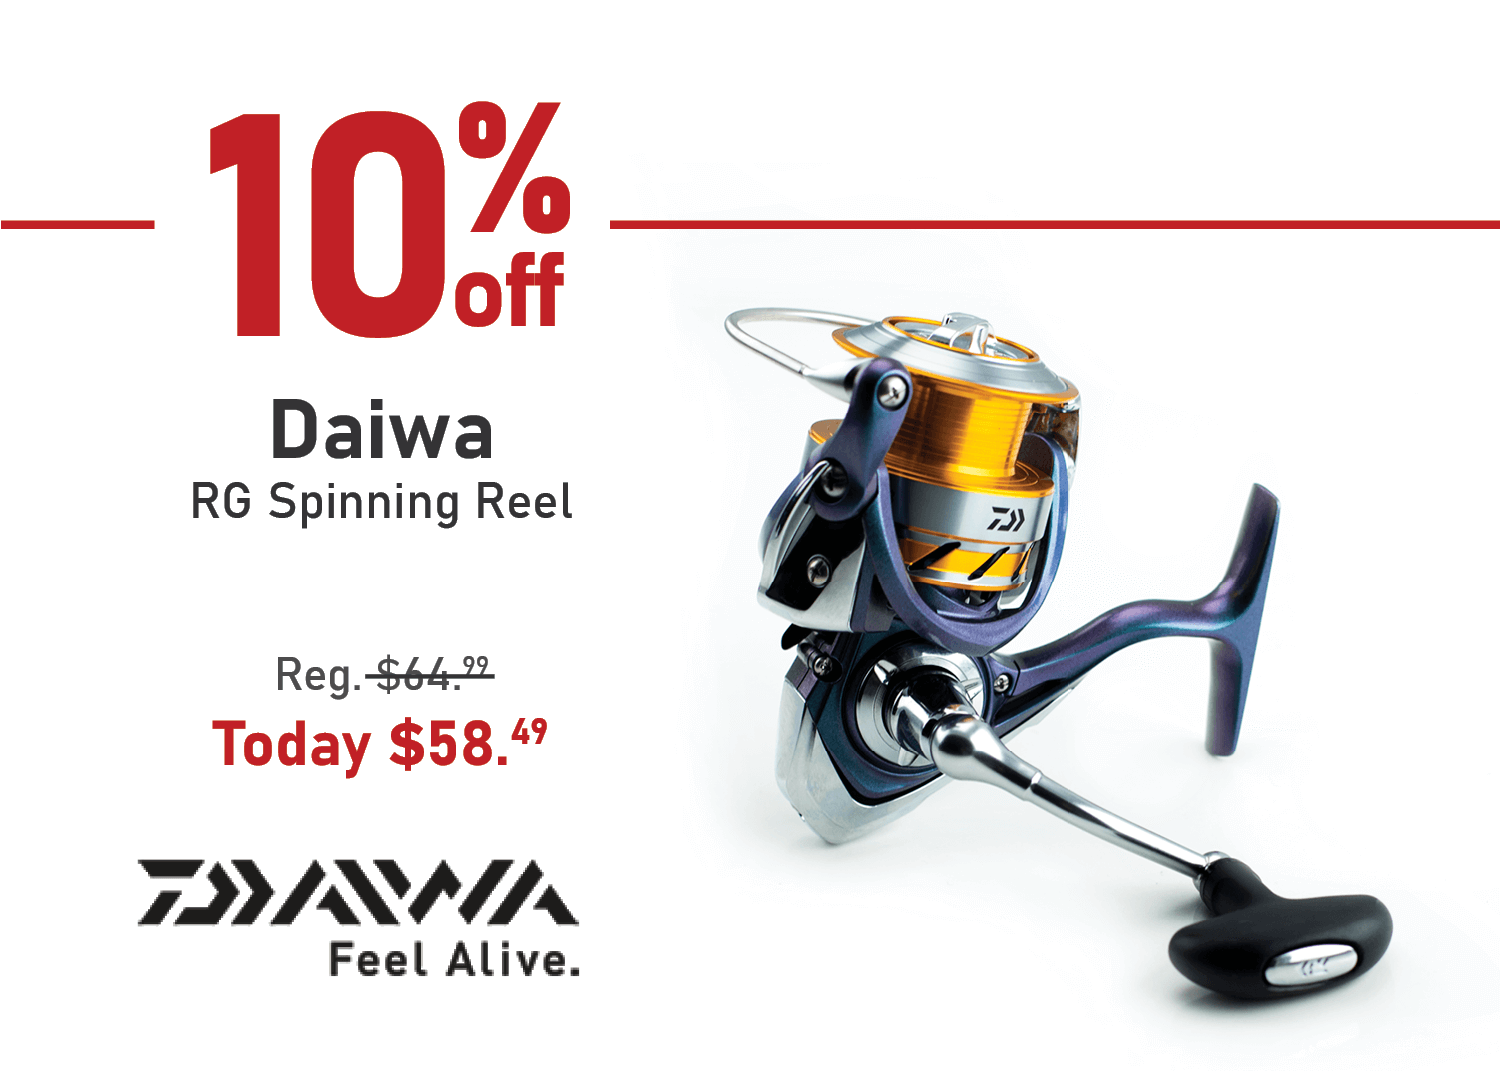 Save 10% on the Daiwa RG Spinning Reel